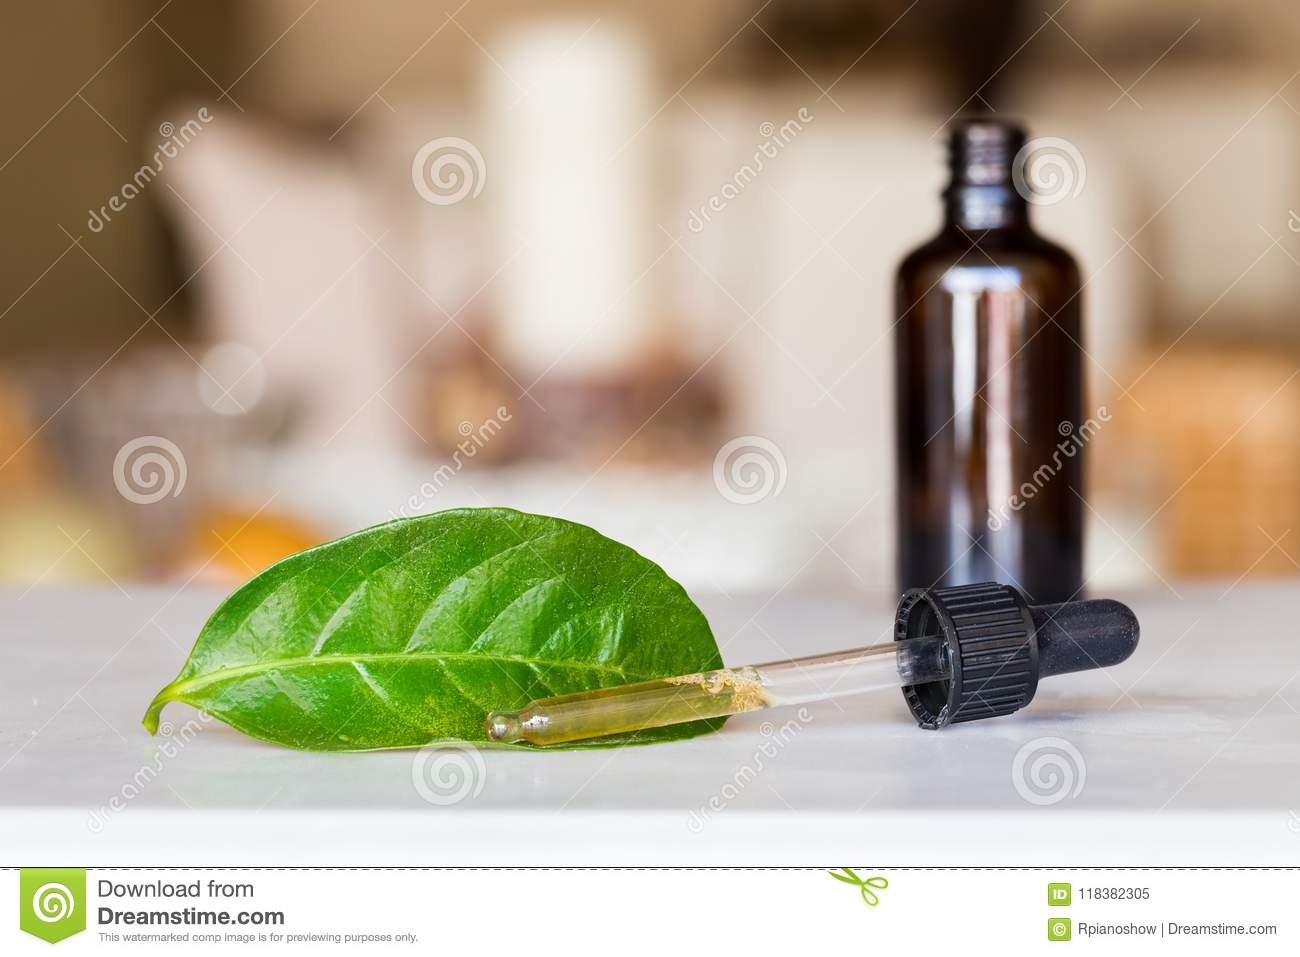 Dropper with liquid with a bottle and a green leaf